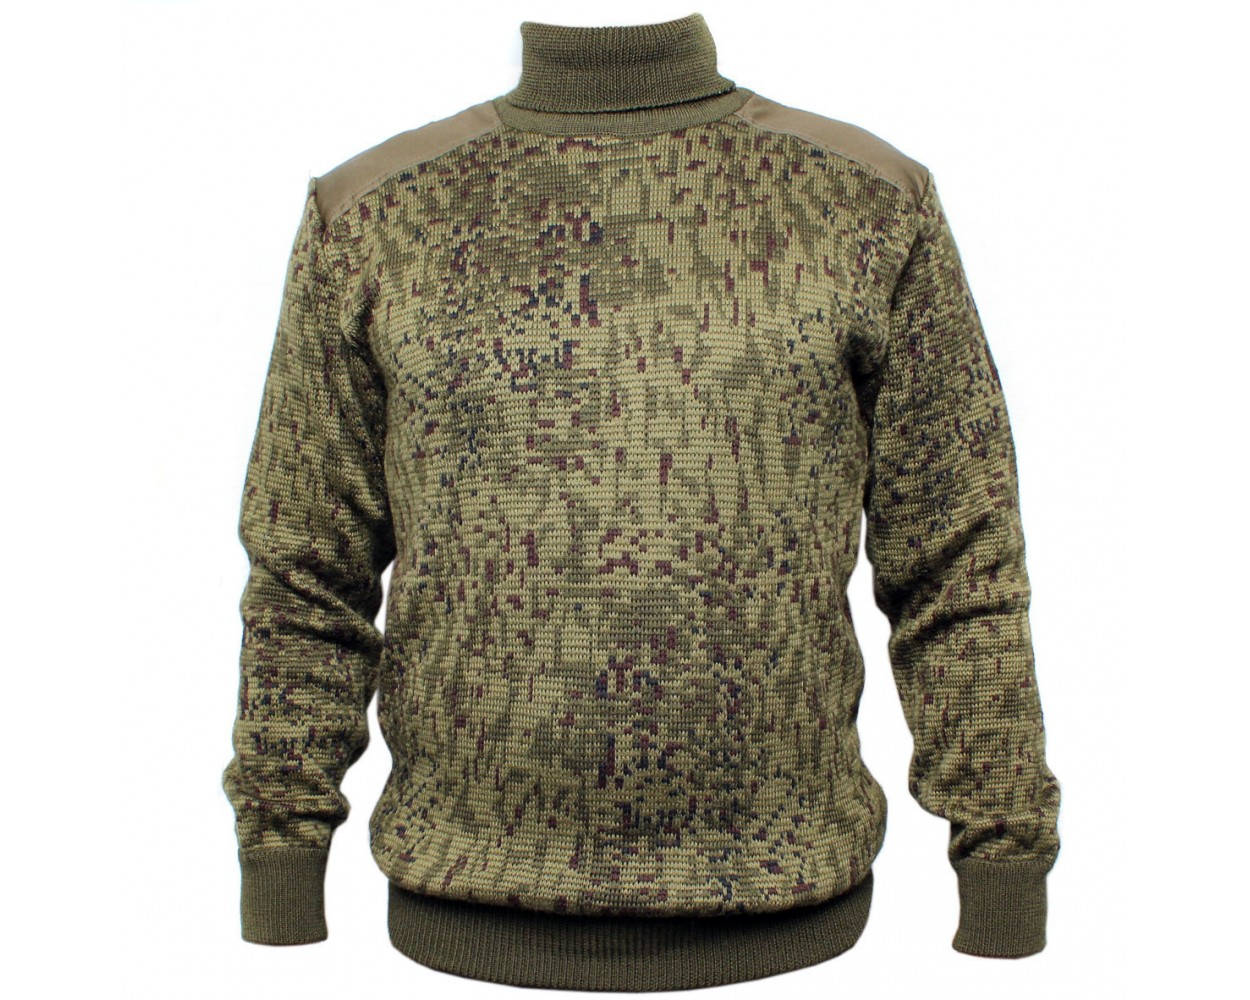 Tricot methode russe